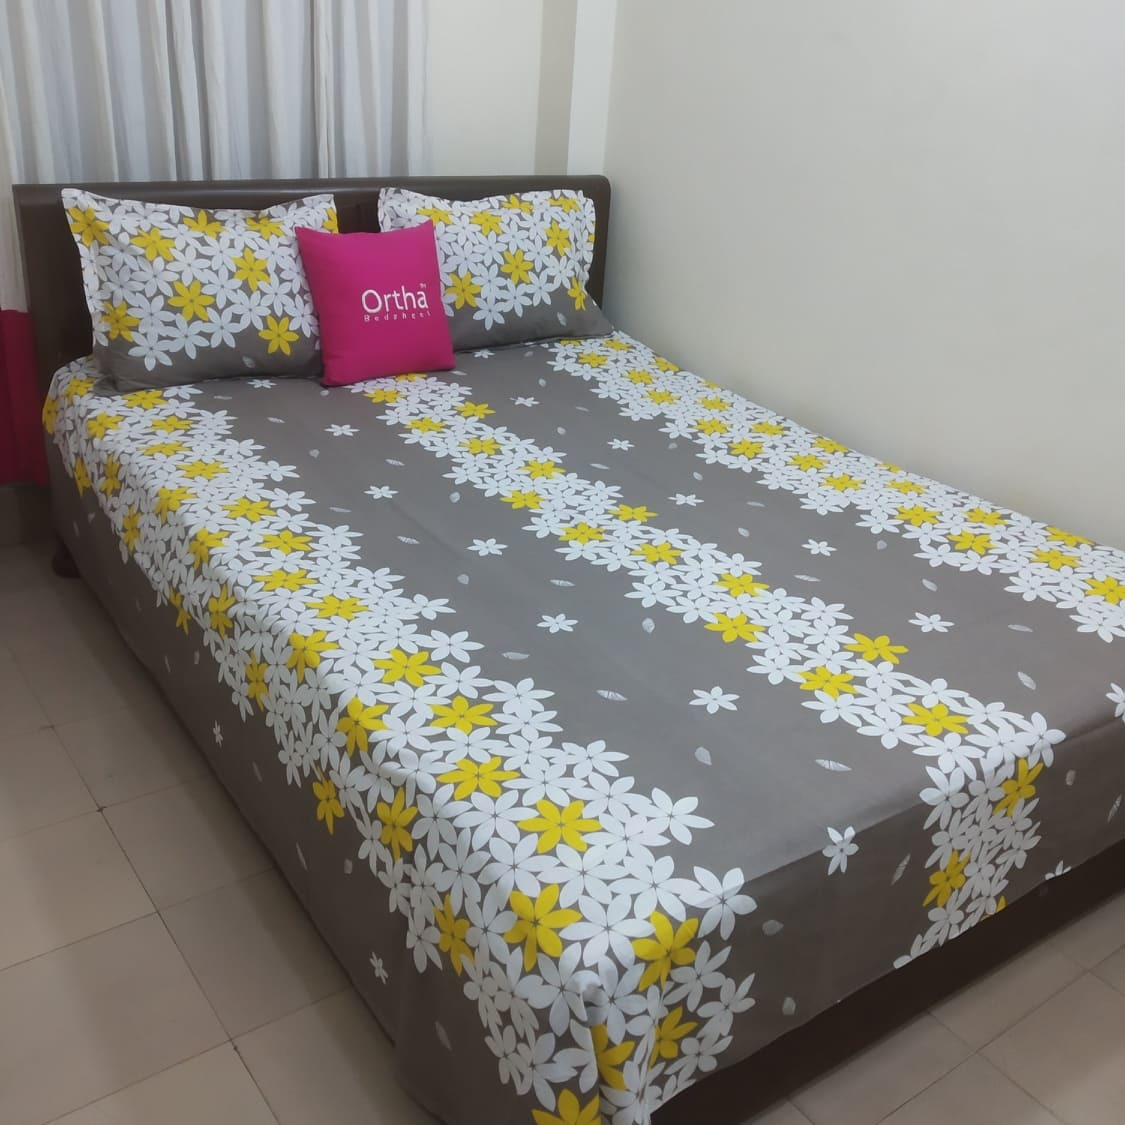 Ortha Bed Sheet